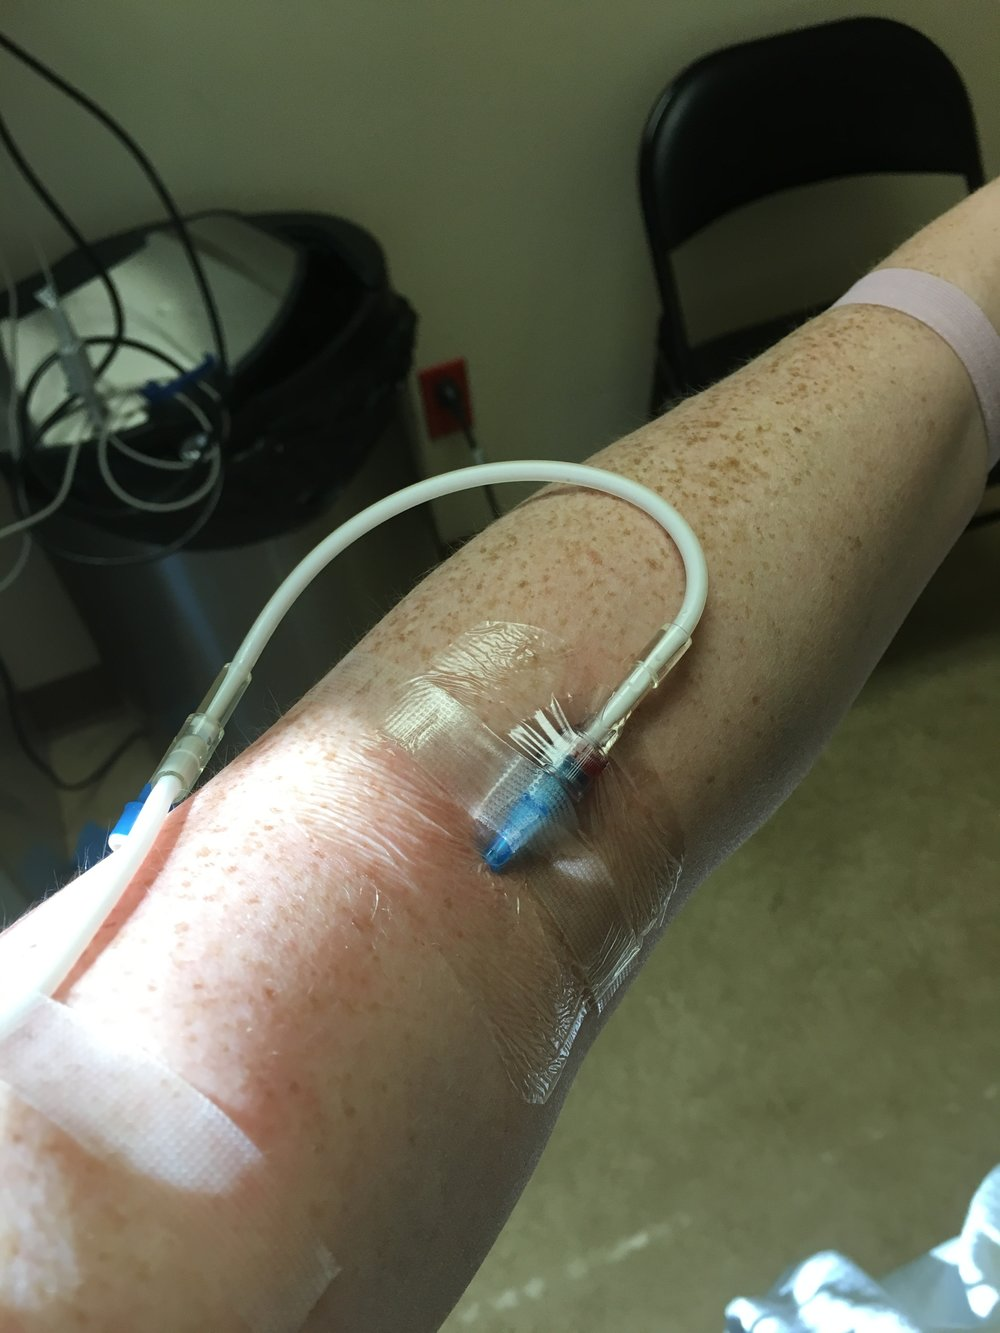 An intralipid infusion